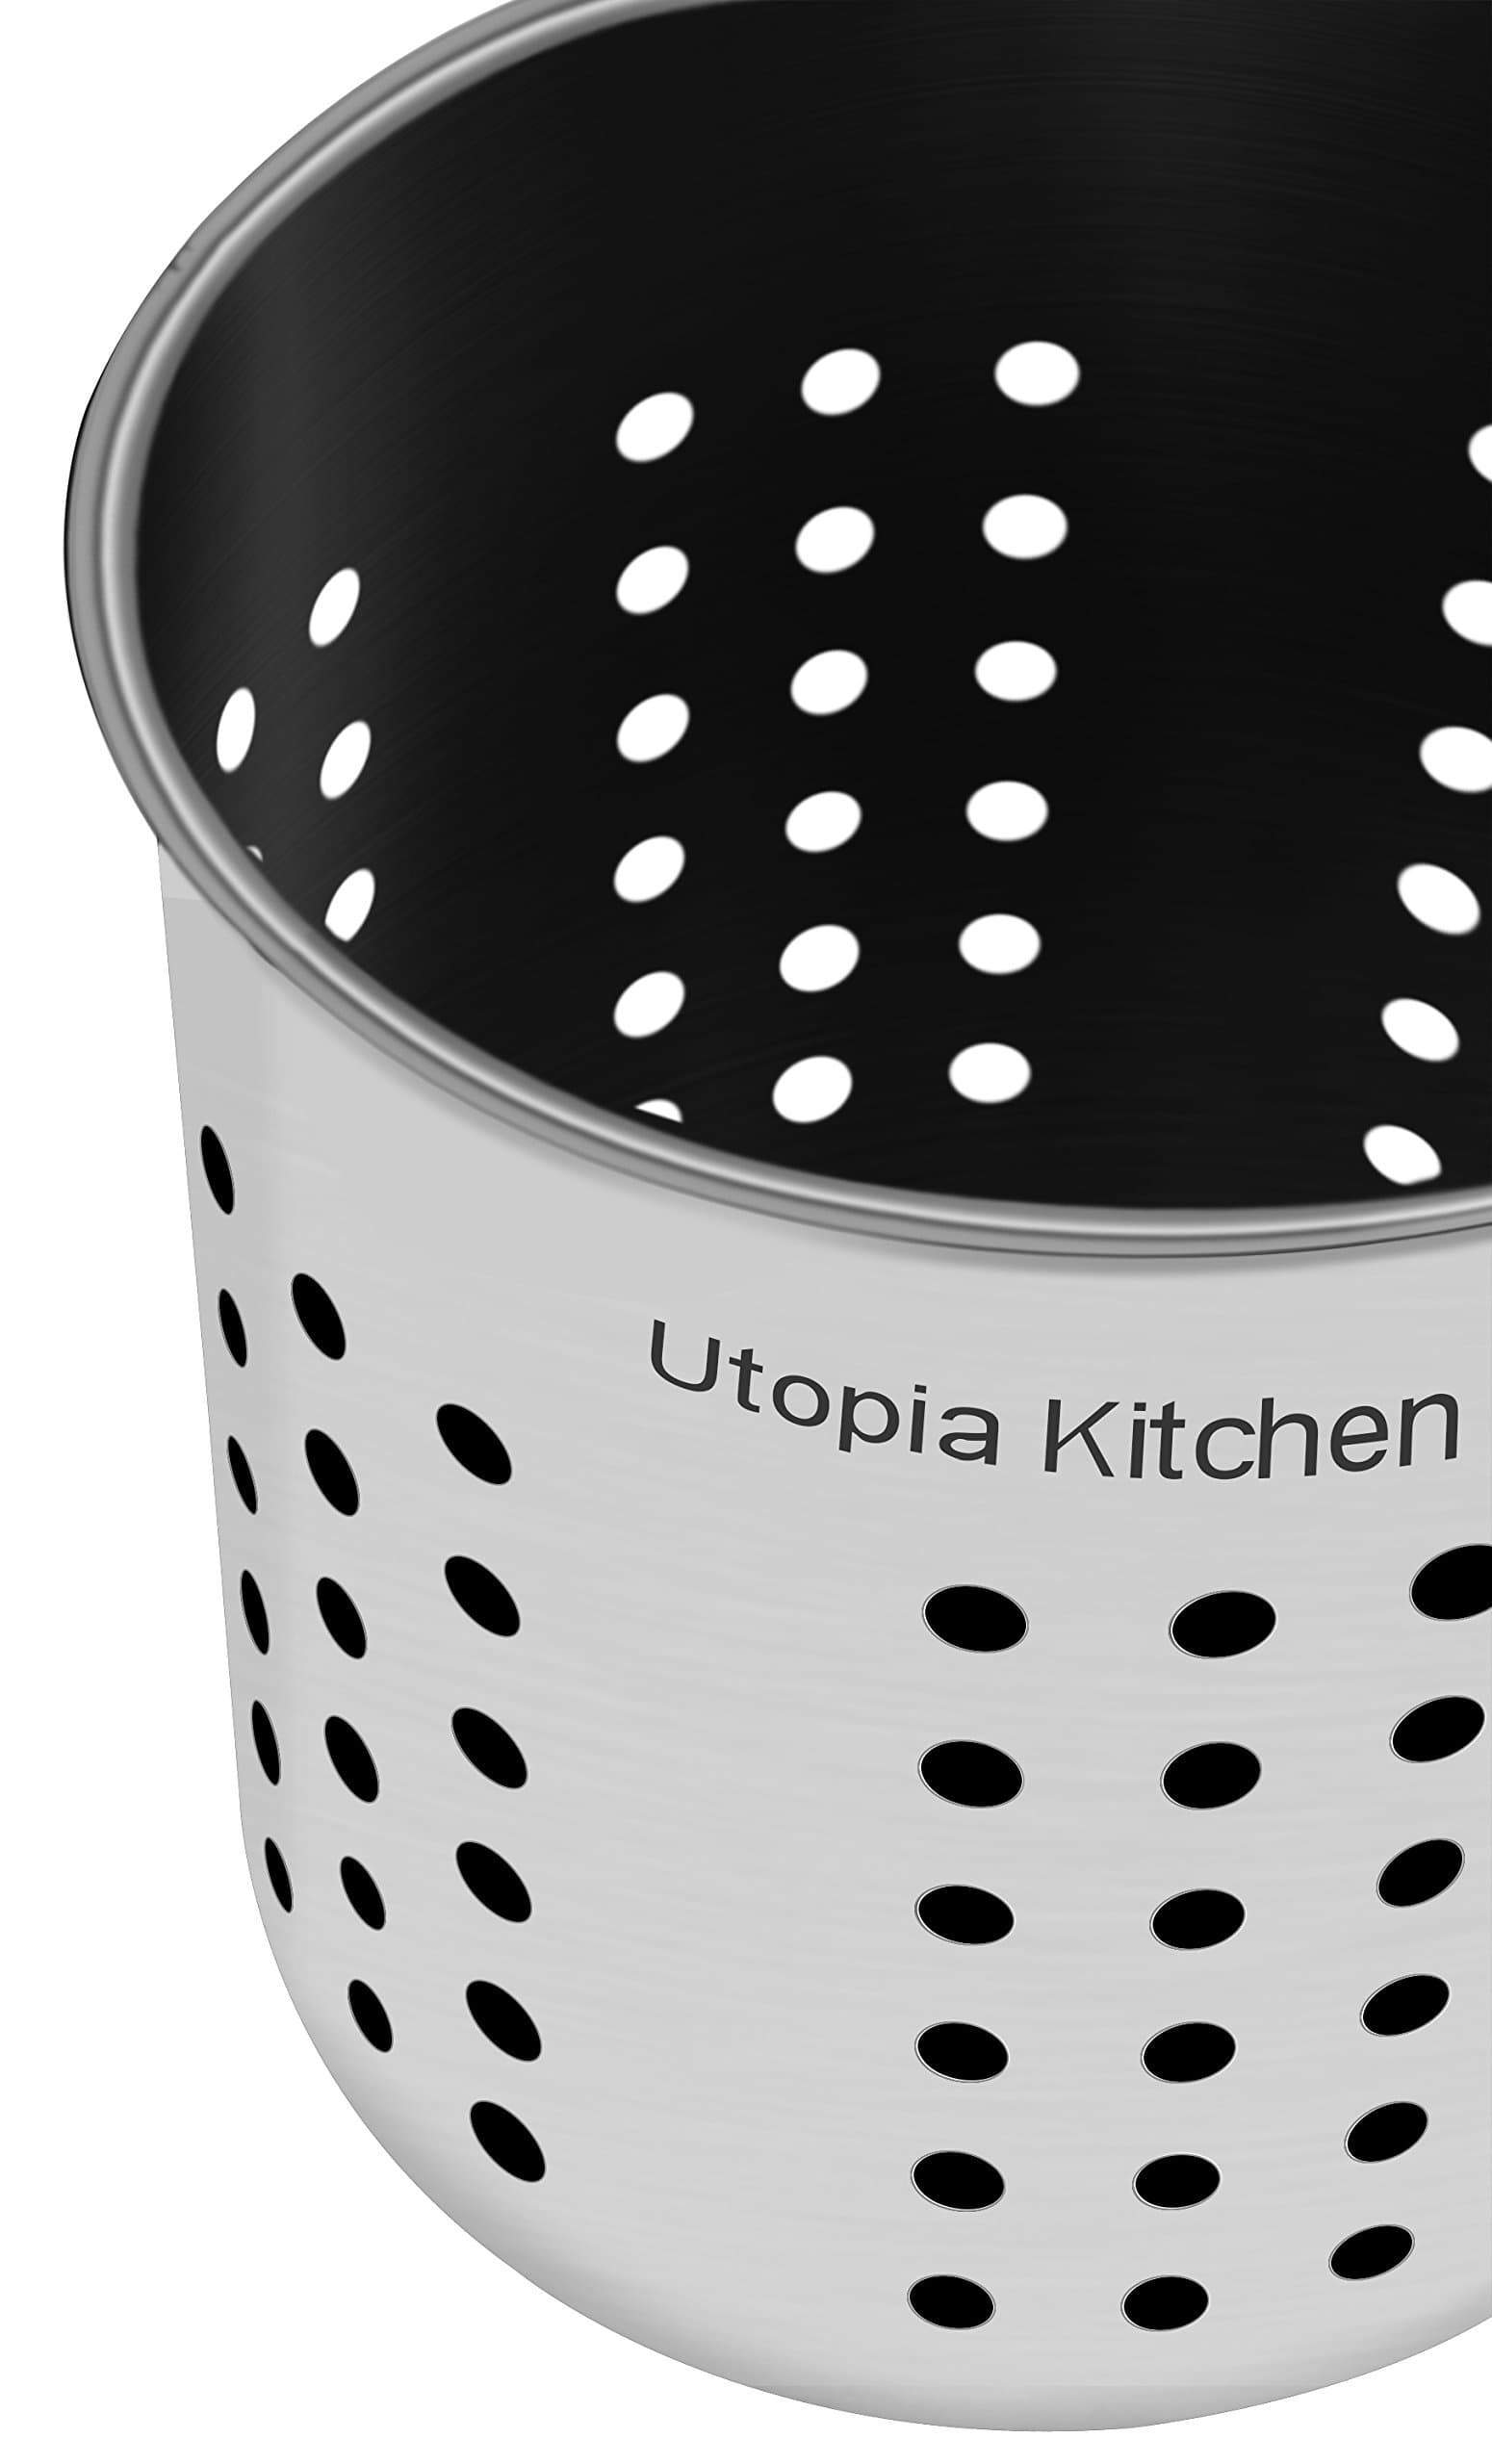 Discover the utopia kitchen utensil holder utensil container 5 x 5 3 utensil crock flatware caddy brushed stainless steel cookware cutlery utensil holder